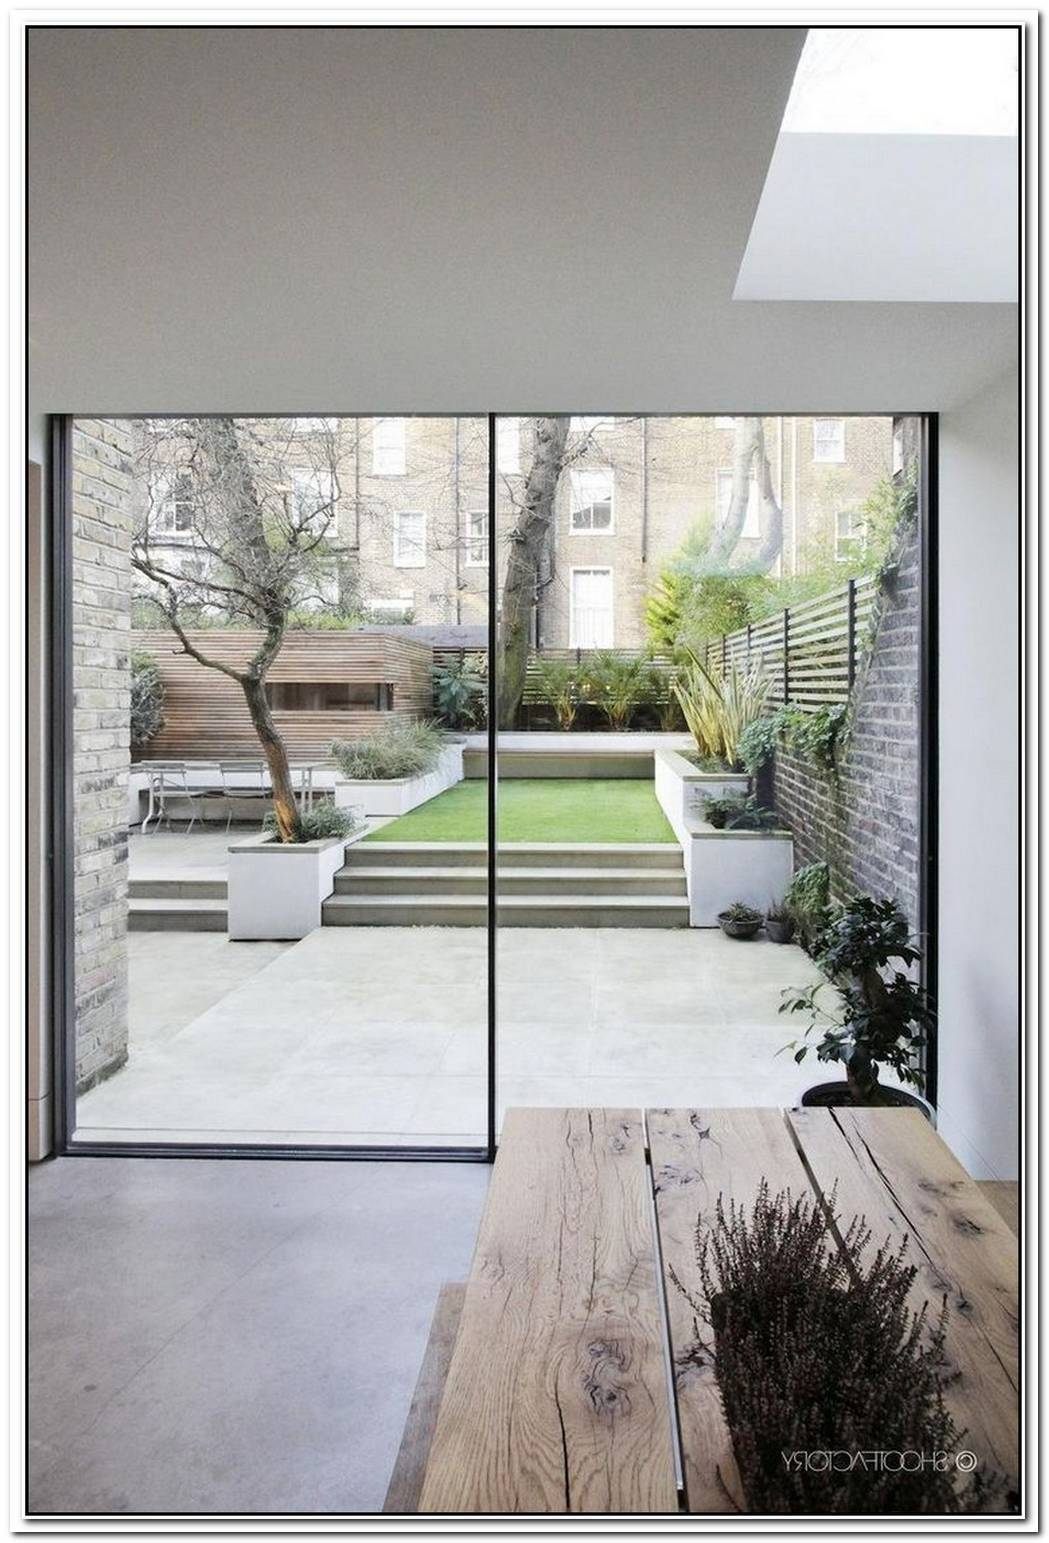 Modern Townhouse In England With Garden Space